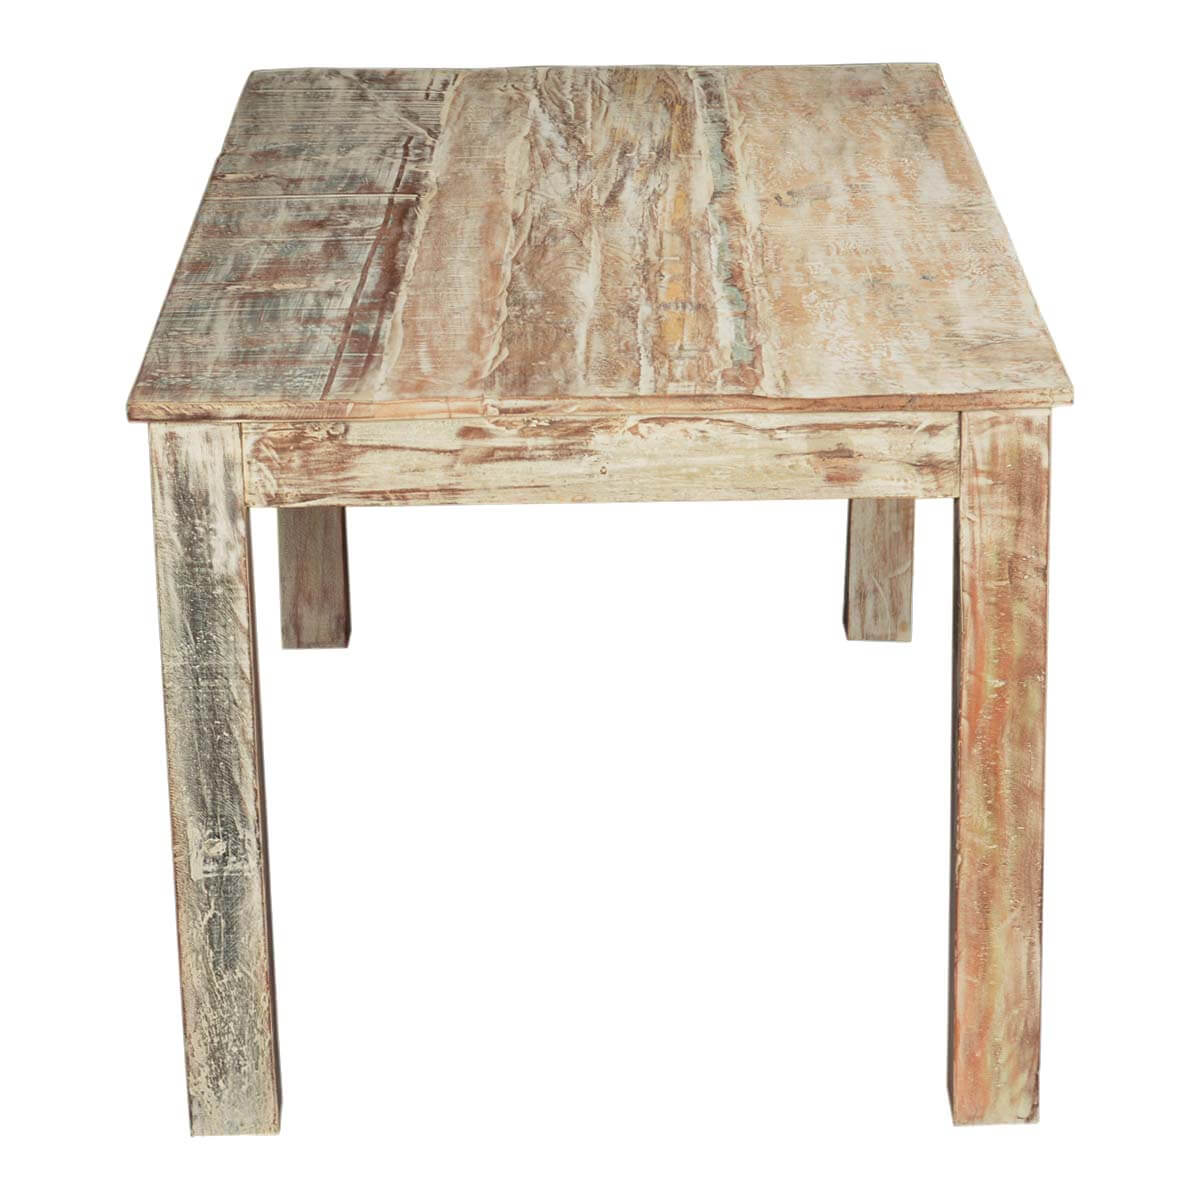 Rustic Wooden Dining Tables ~ Rustic reclaimed wood texas distressed dining table